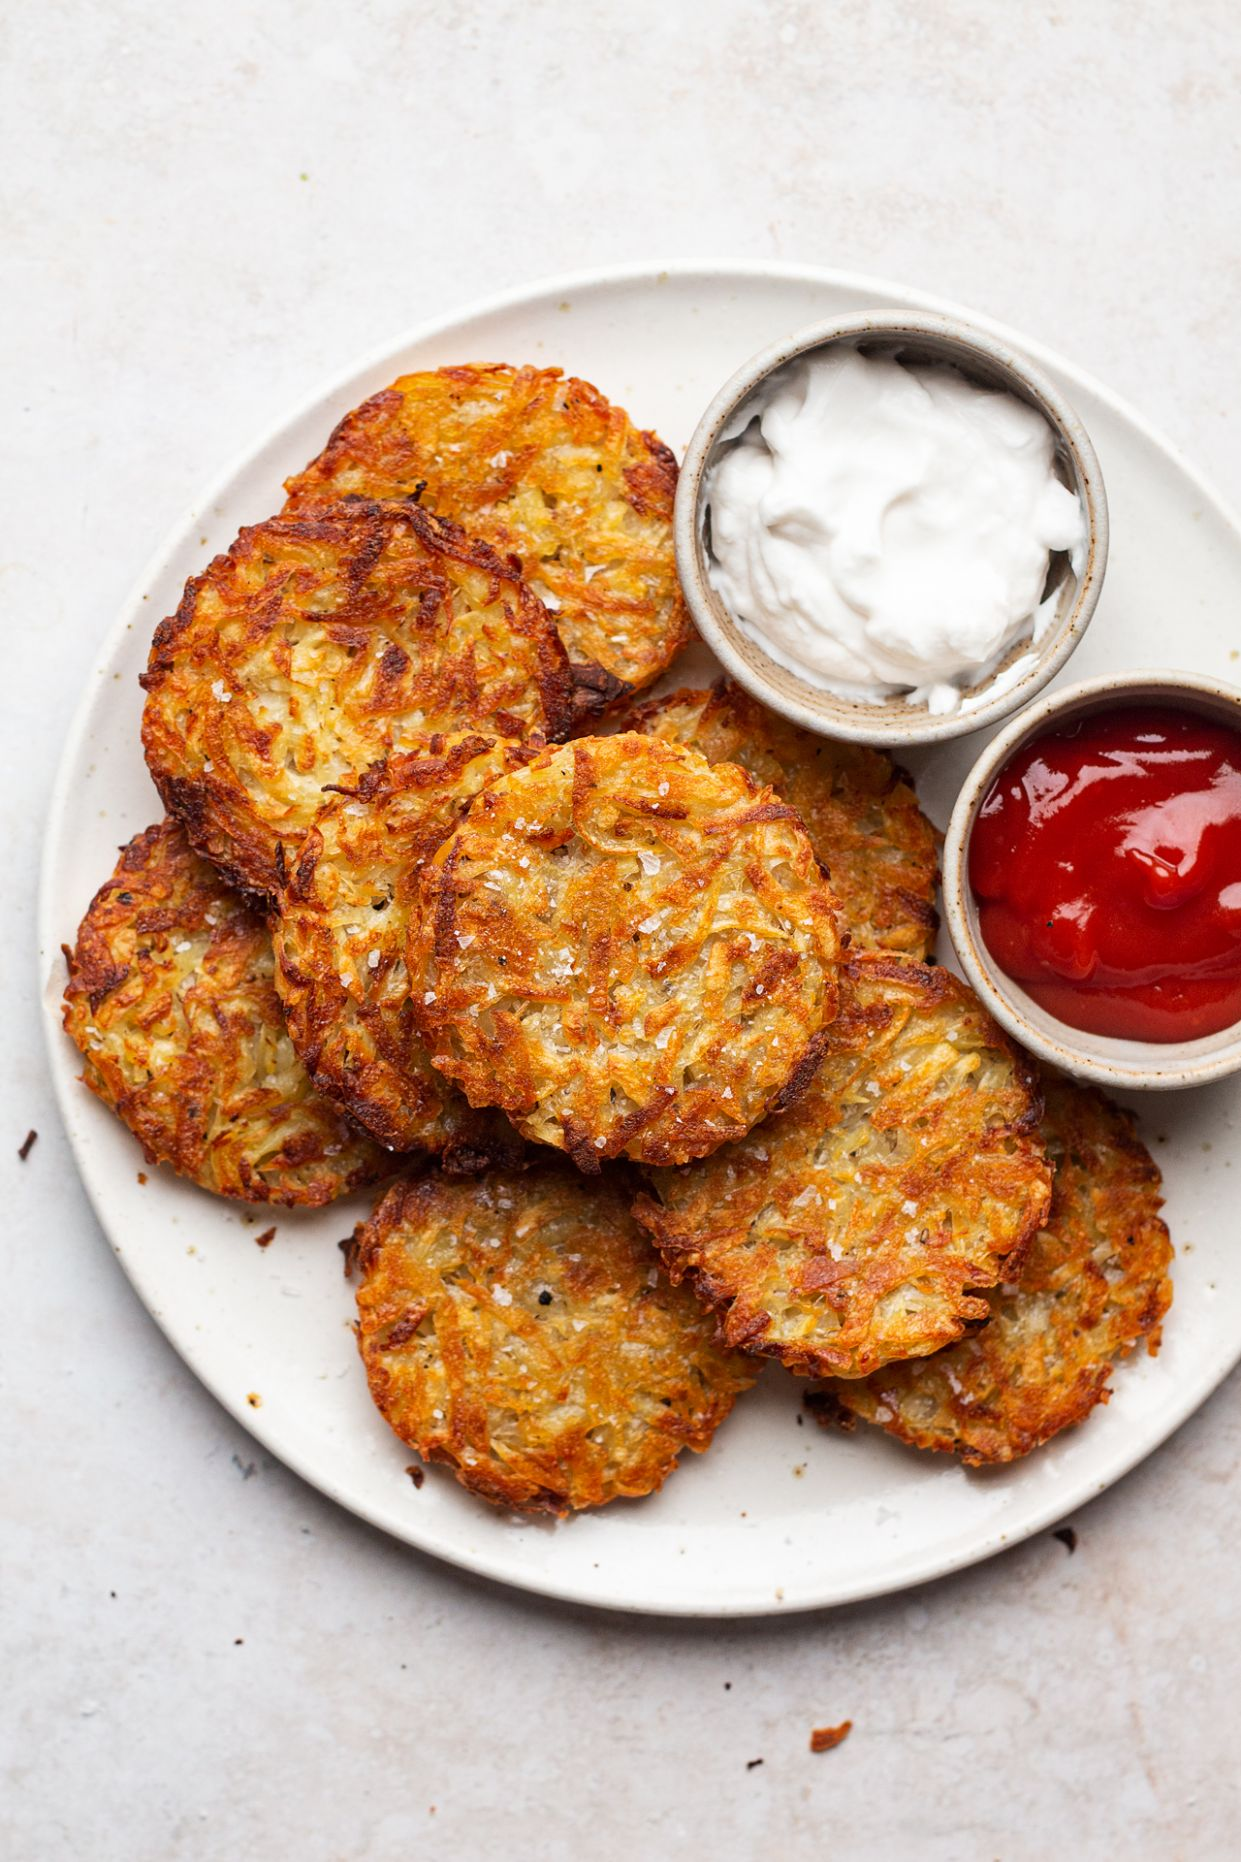 Baked vegan hash browns - Lazy Cat Kitchen - Simple Recipes Hash Browns